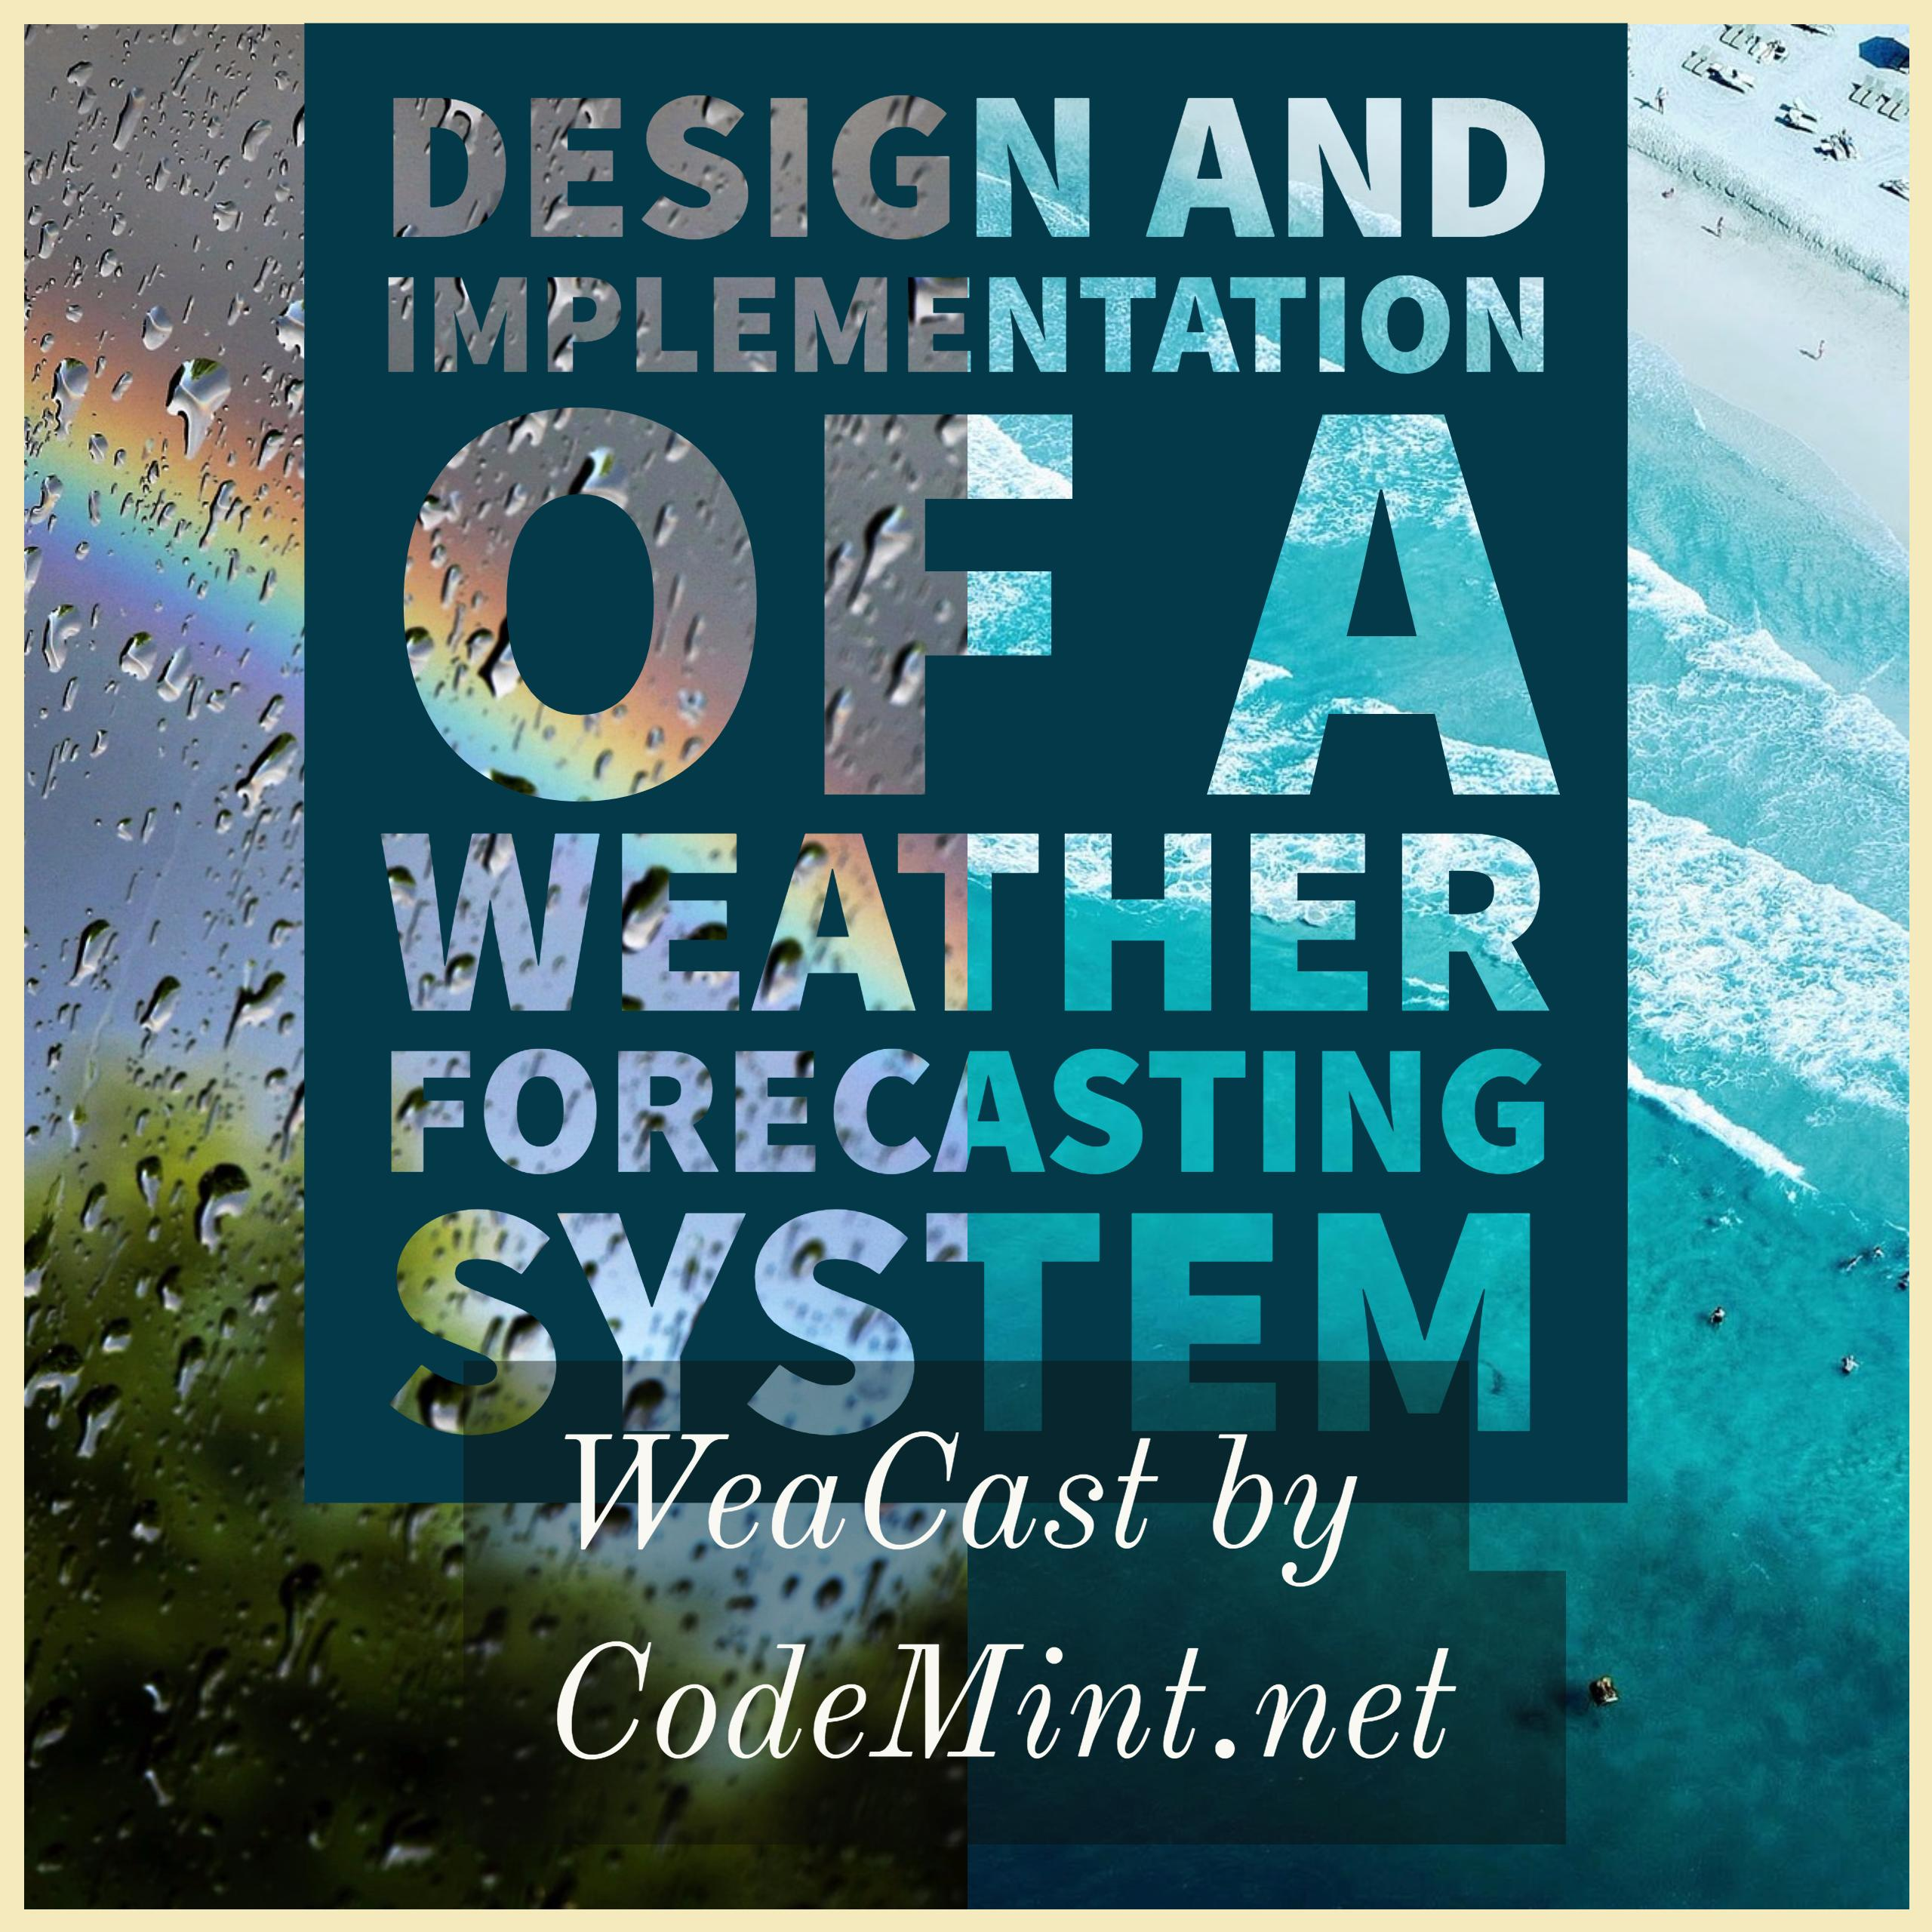 WeaCast - Design and Implementation of A Weather Forecasting System